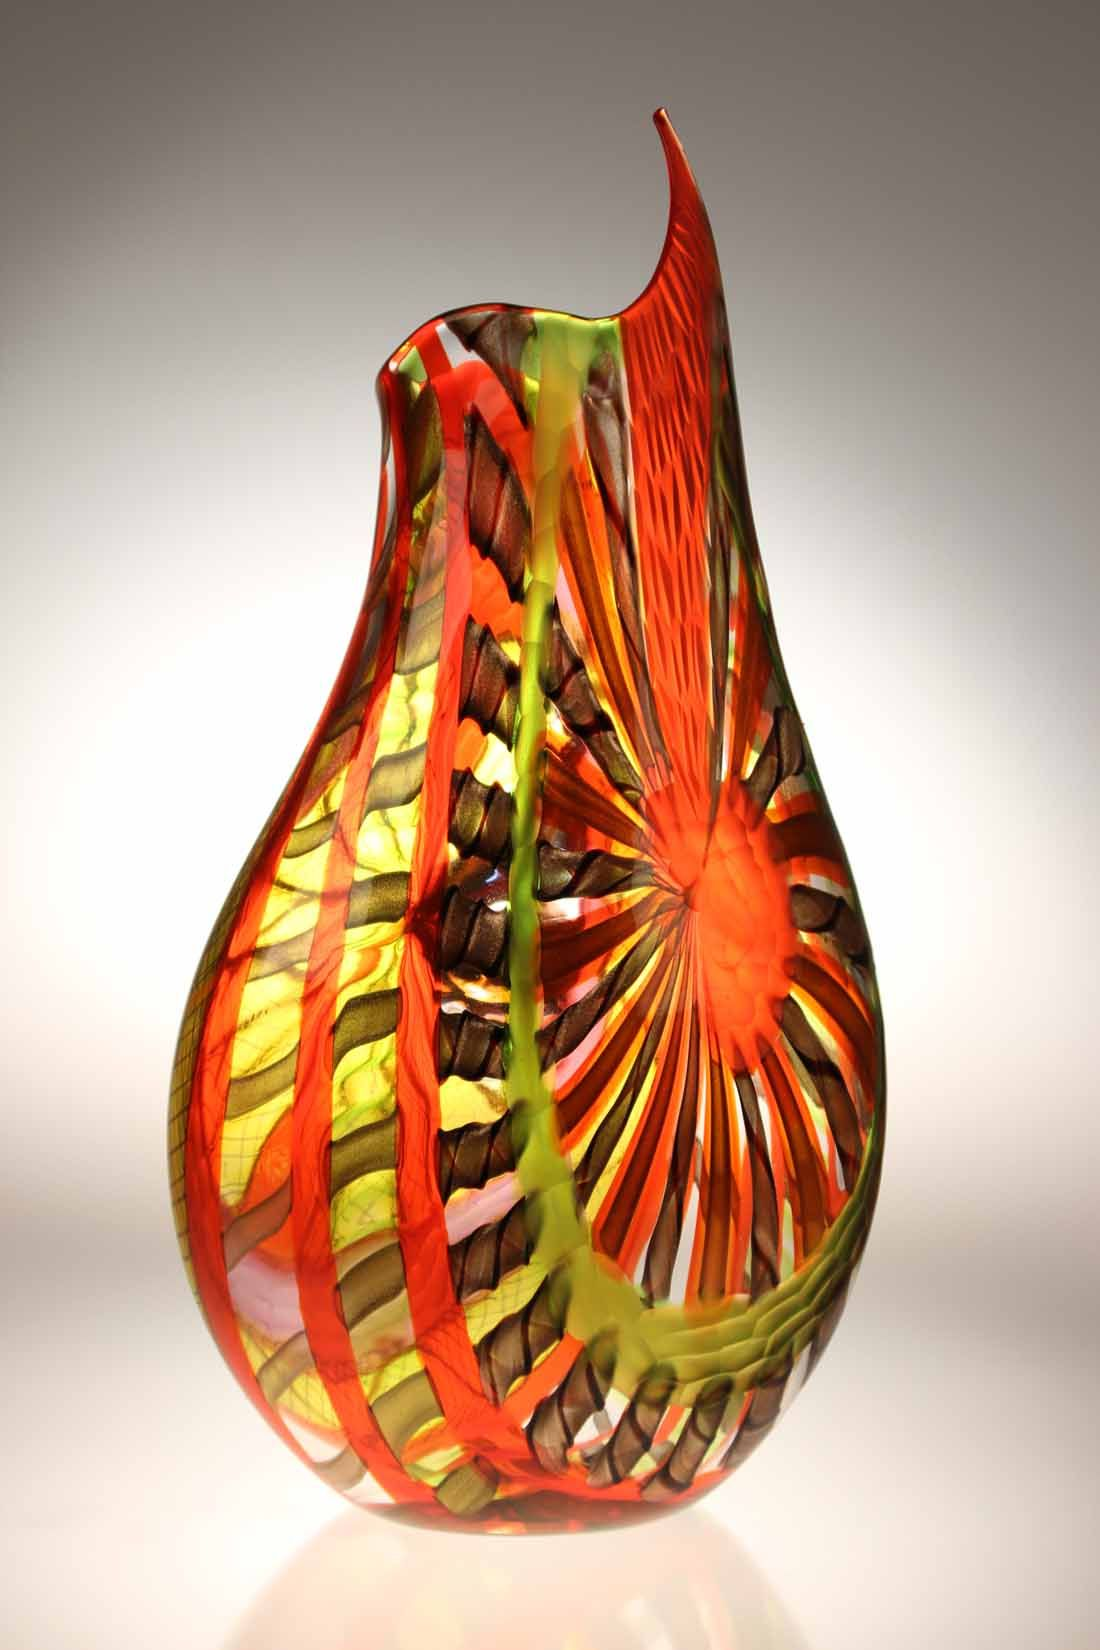 Murano Glass Studio Vase Lodario 18 Reverse Murano Glass Vase Stained Glass Art Art Of Glass